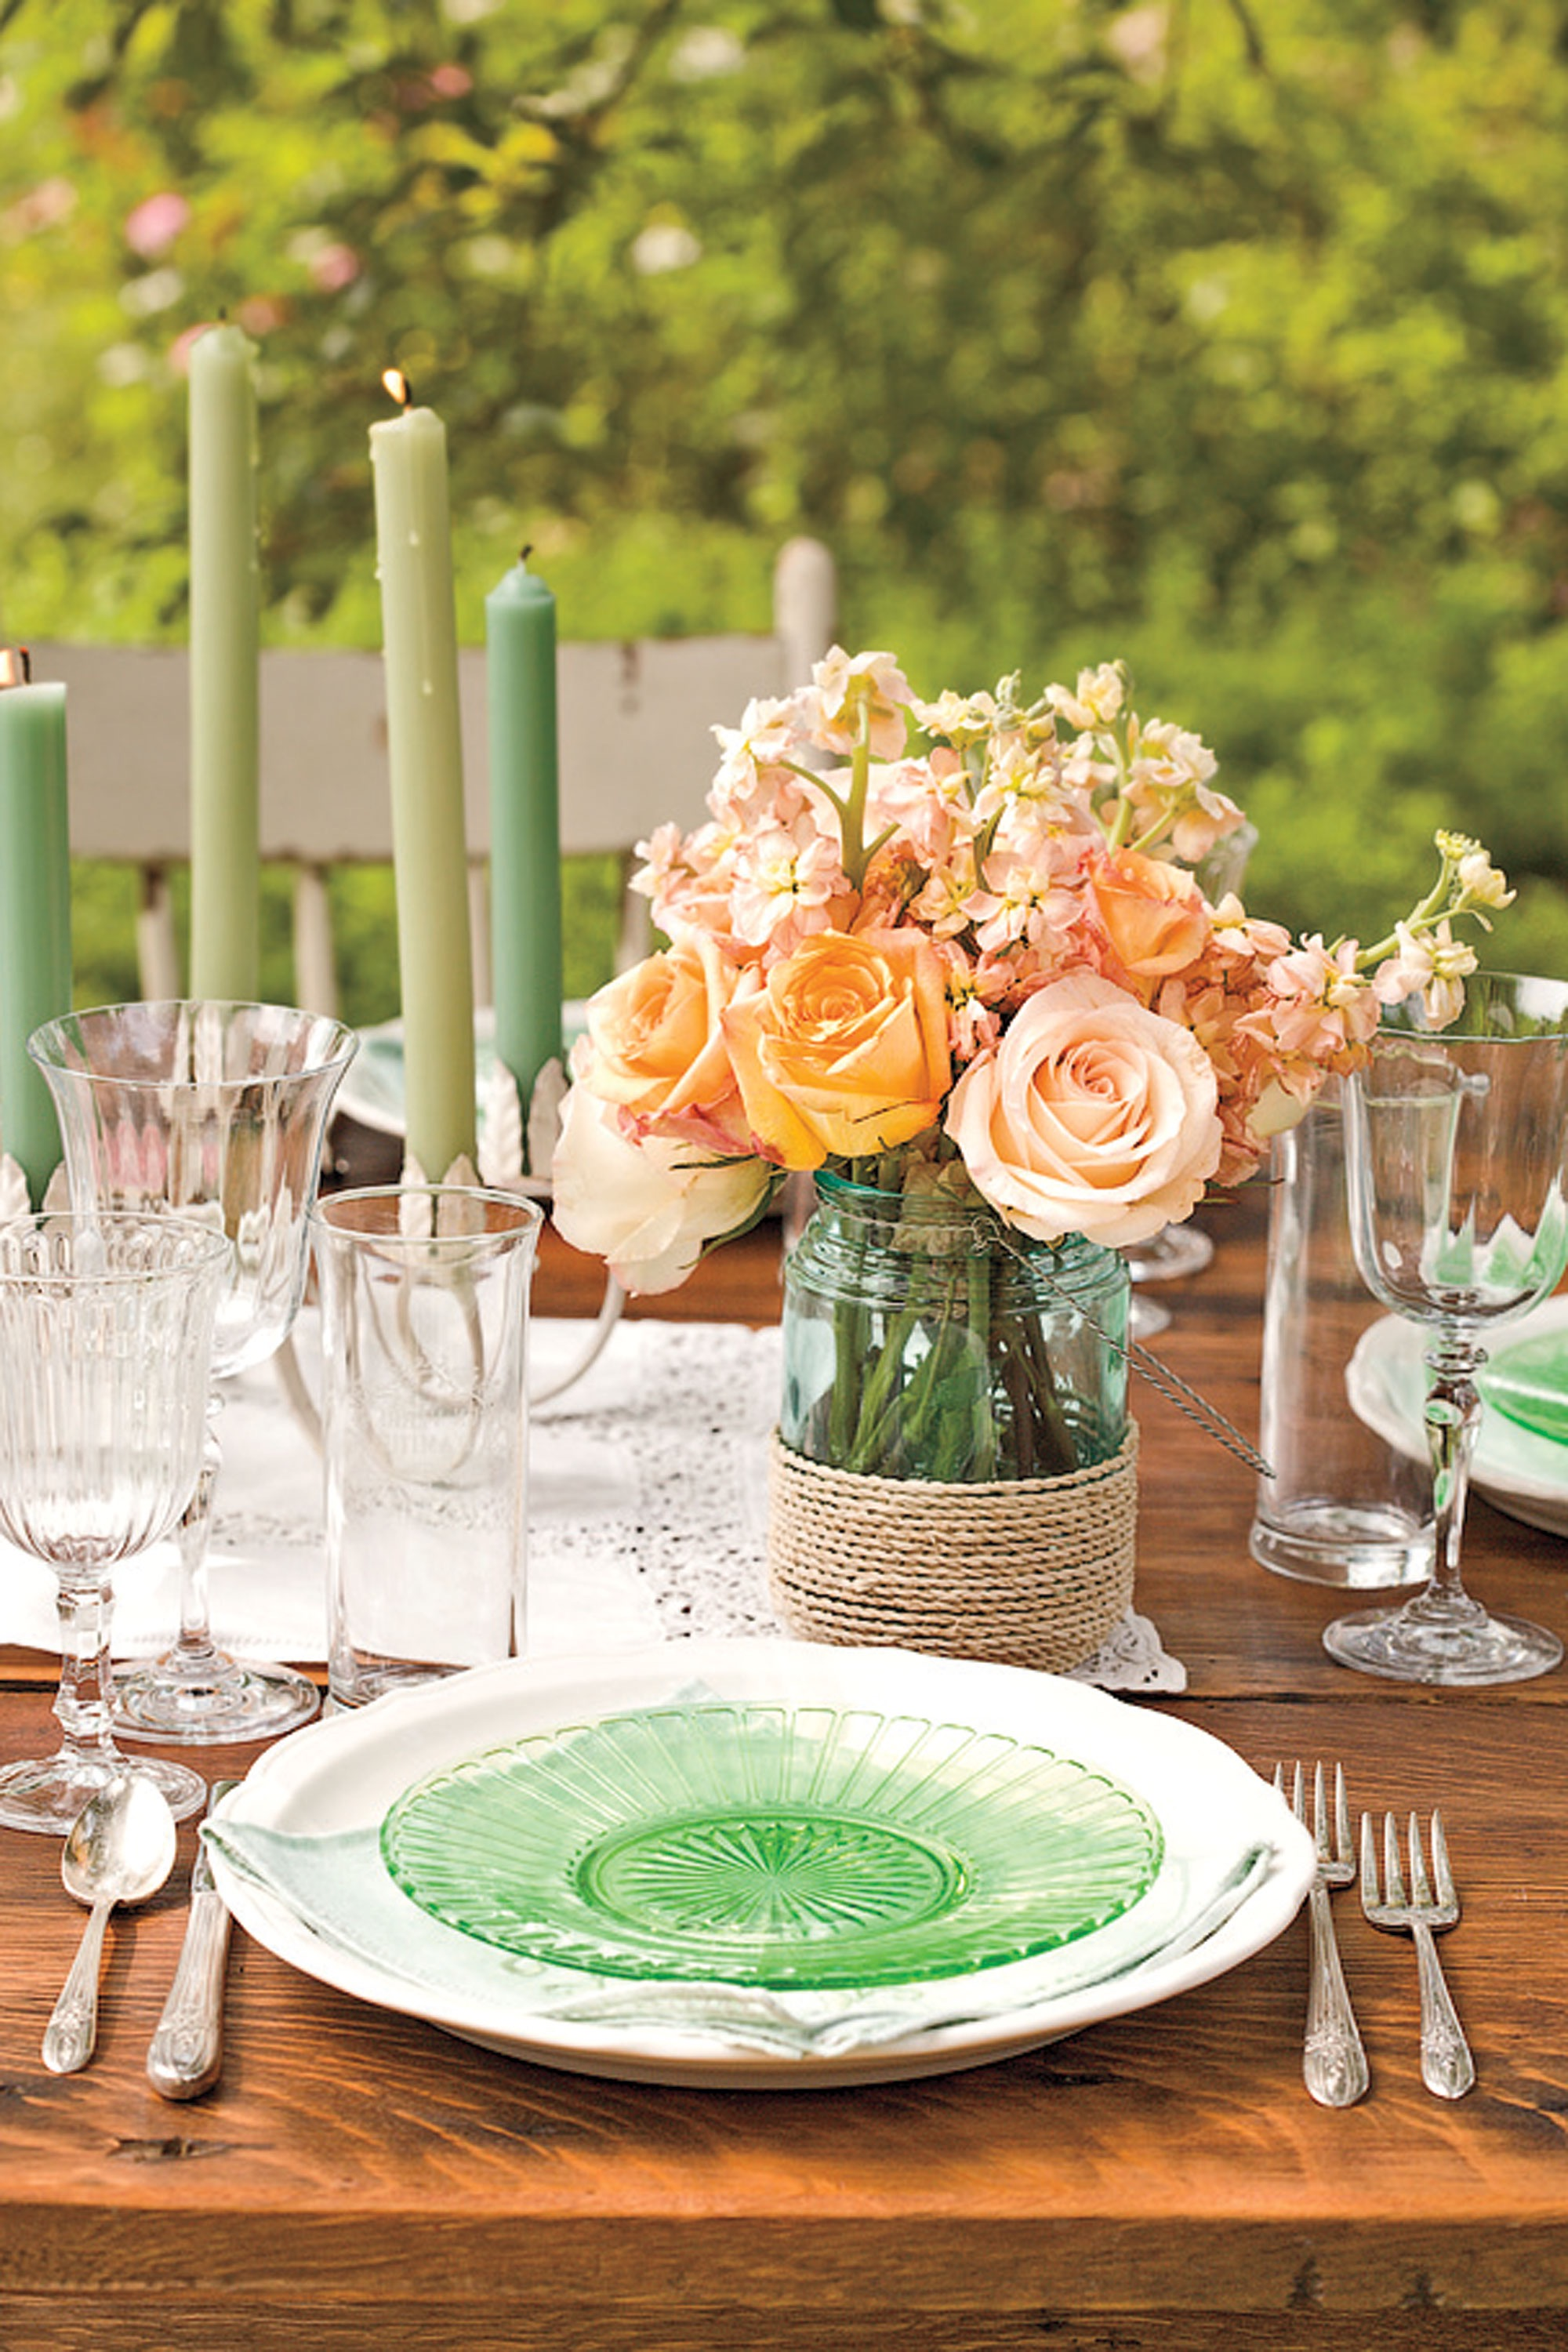 Summer Wedding Table And Centerpiece Decoration (Image 17 of 20)